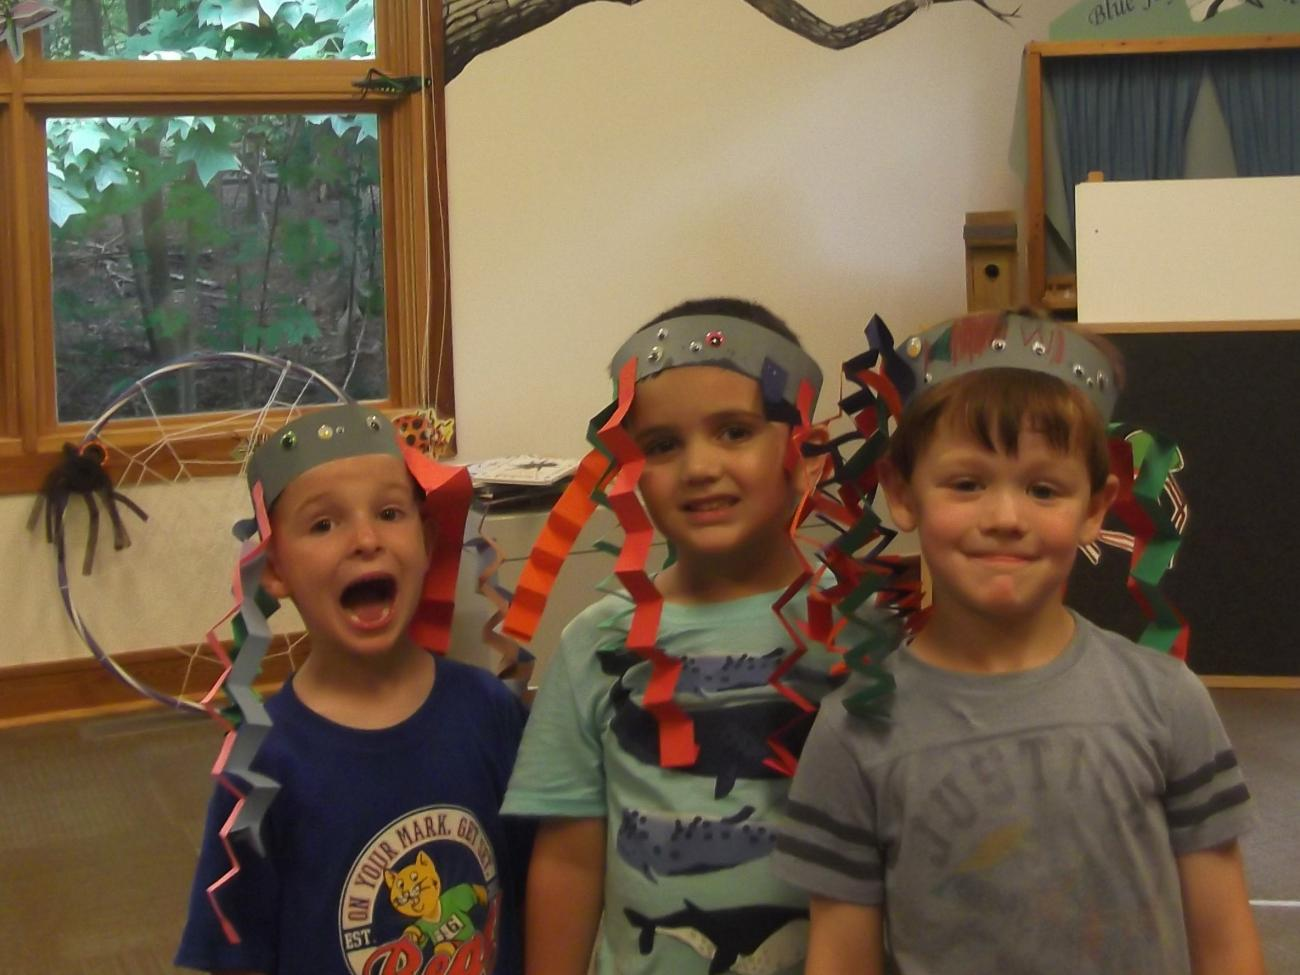 3 smiling young children with paper spider craft hats on their heads